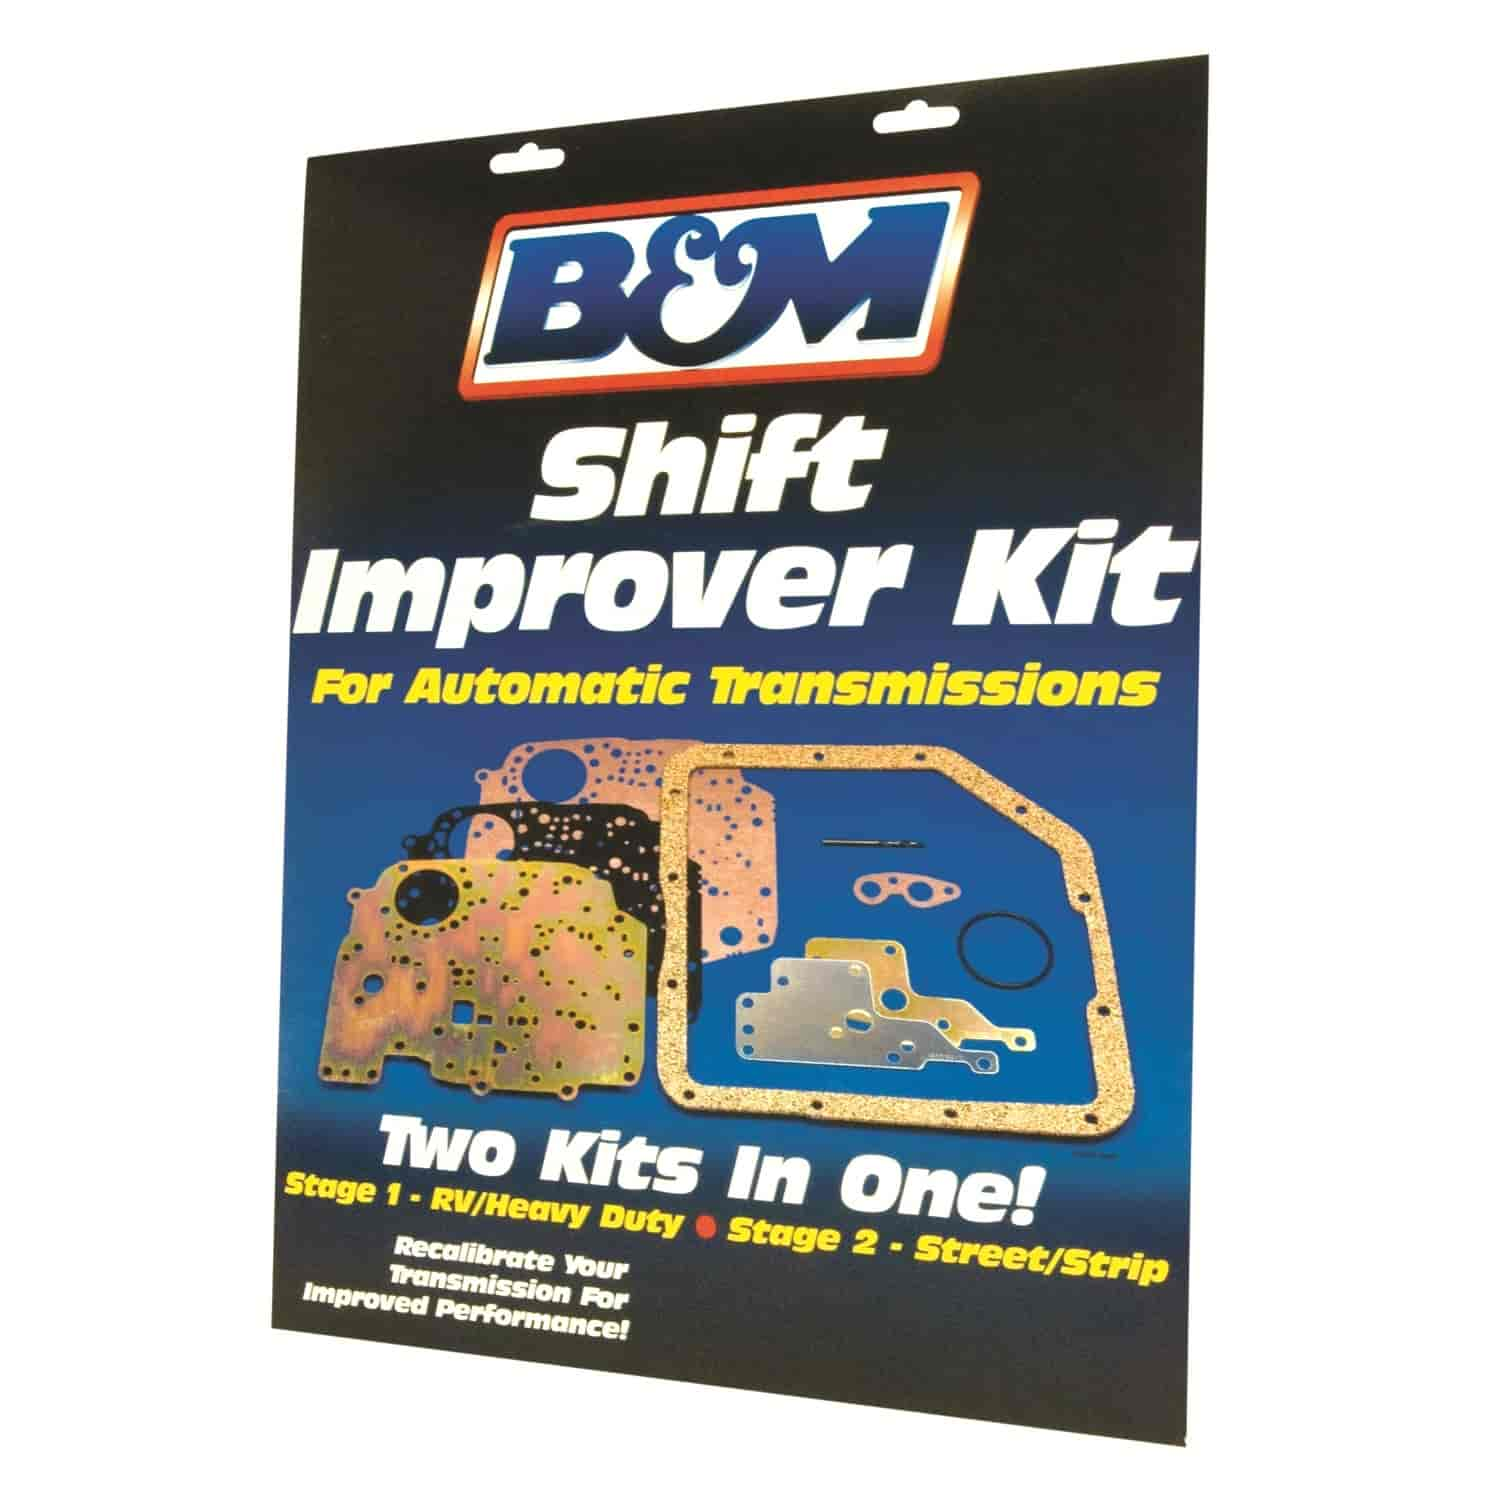 B&M 10025 - B&M Light Truck Shift Improver Kit